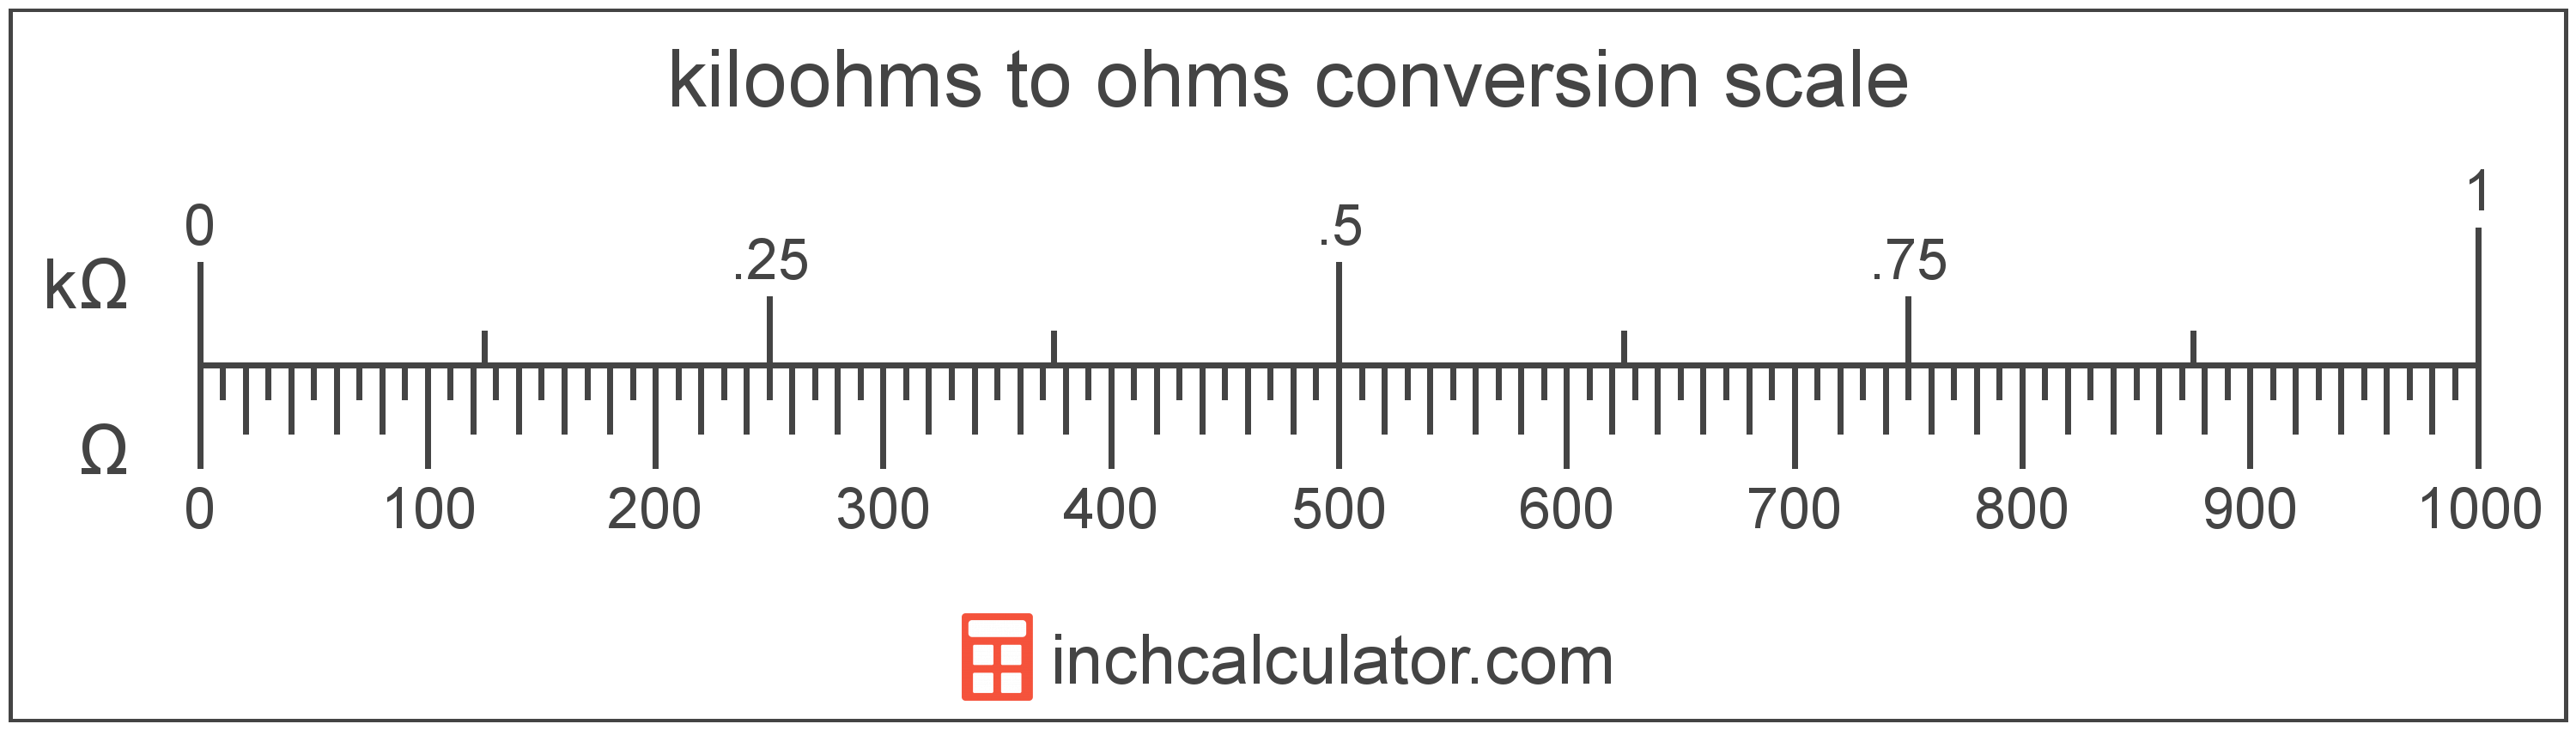 conversion scale showing ohms and equivalent kiloohms electrical resistance values